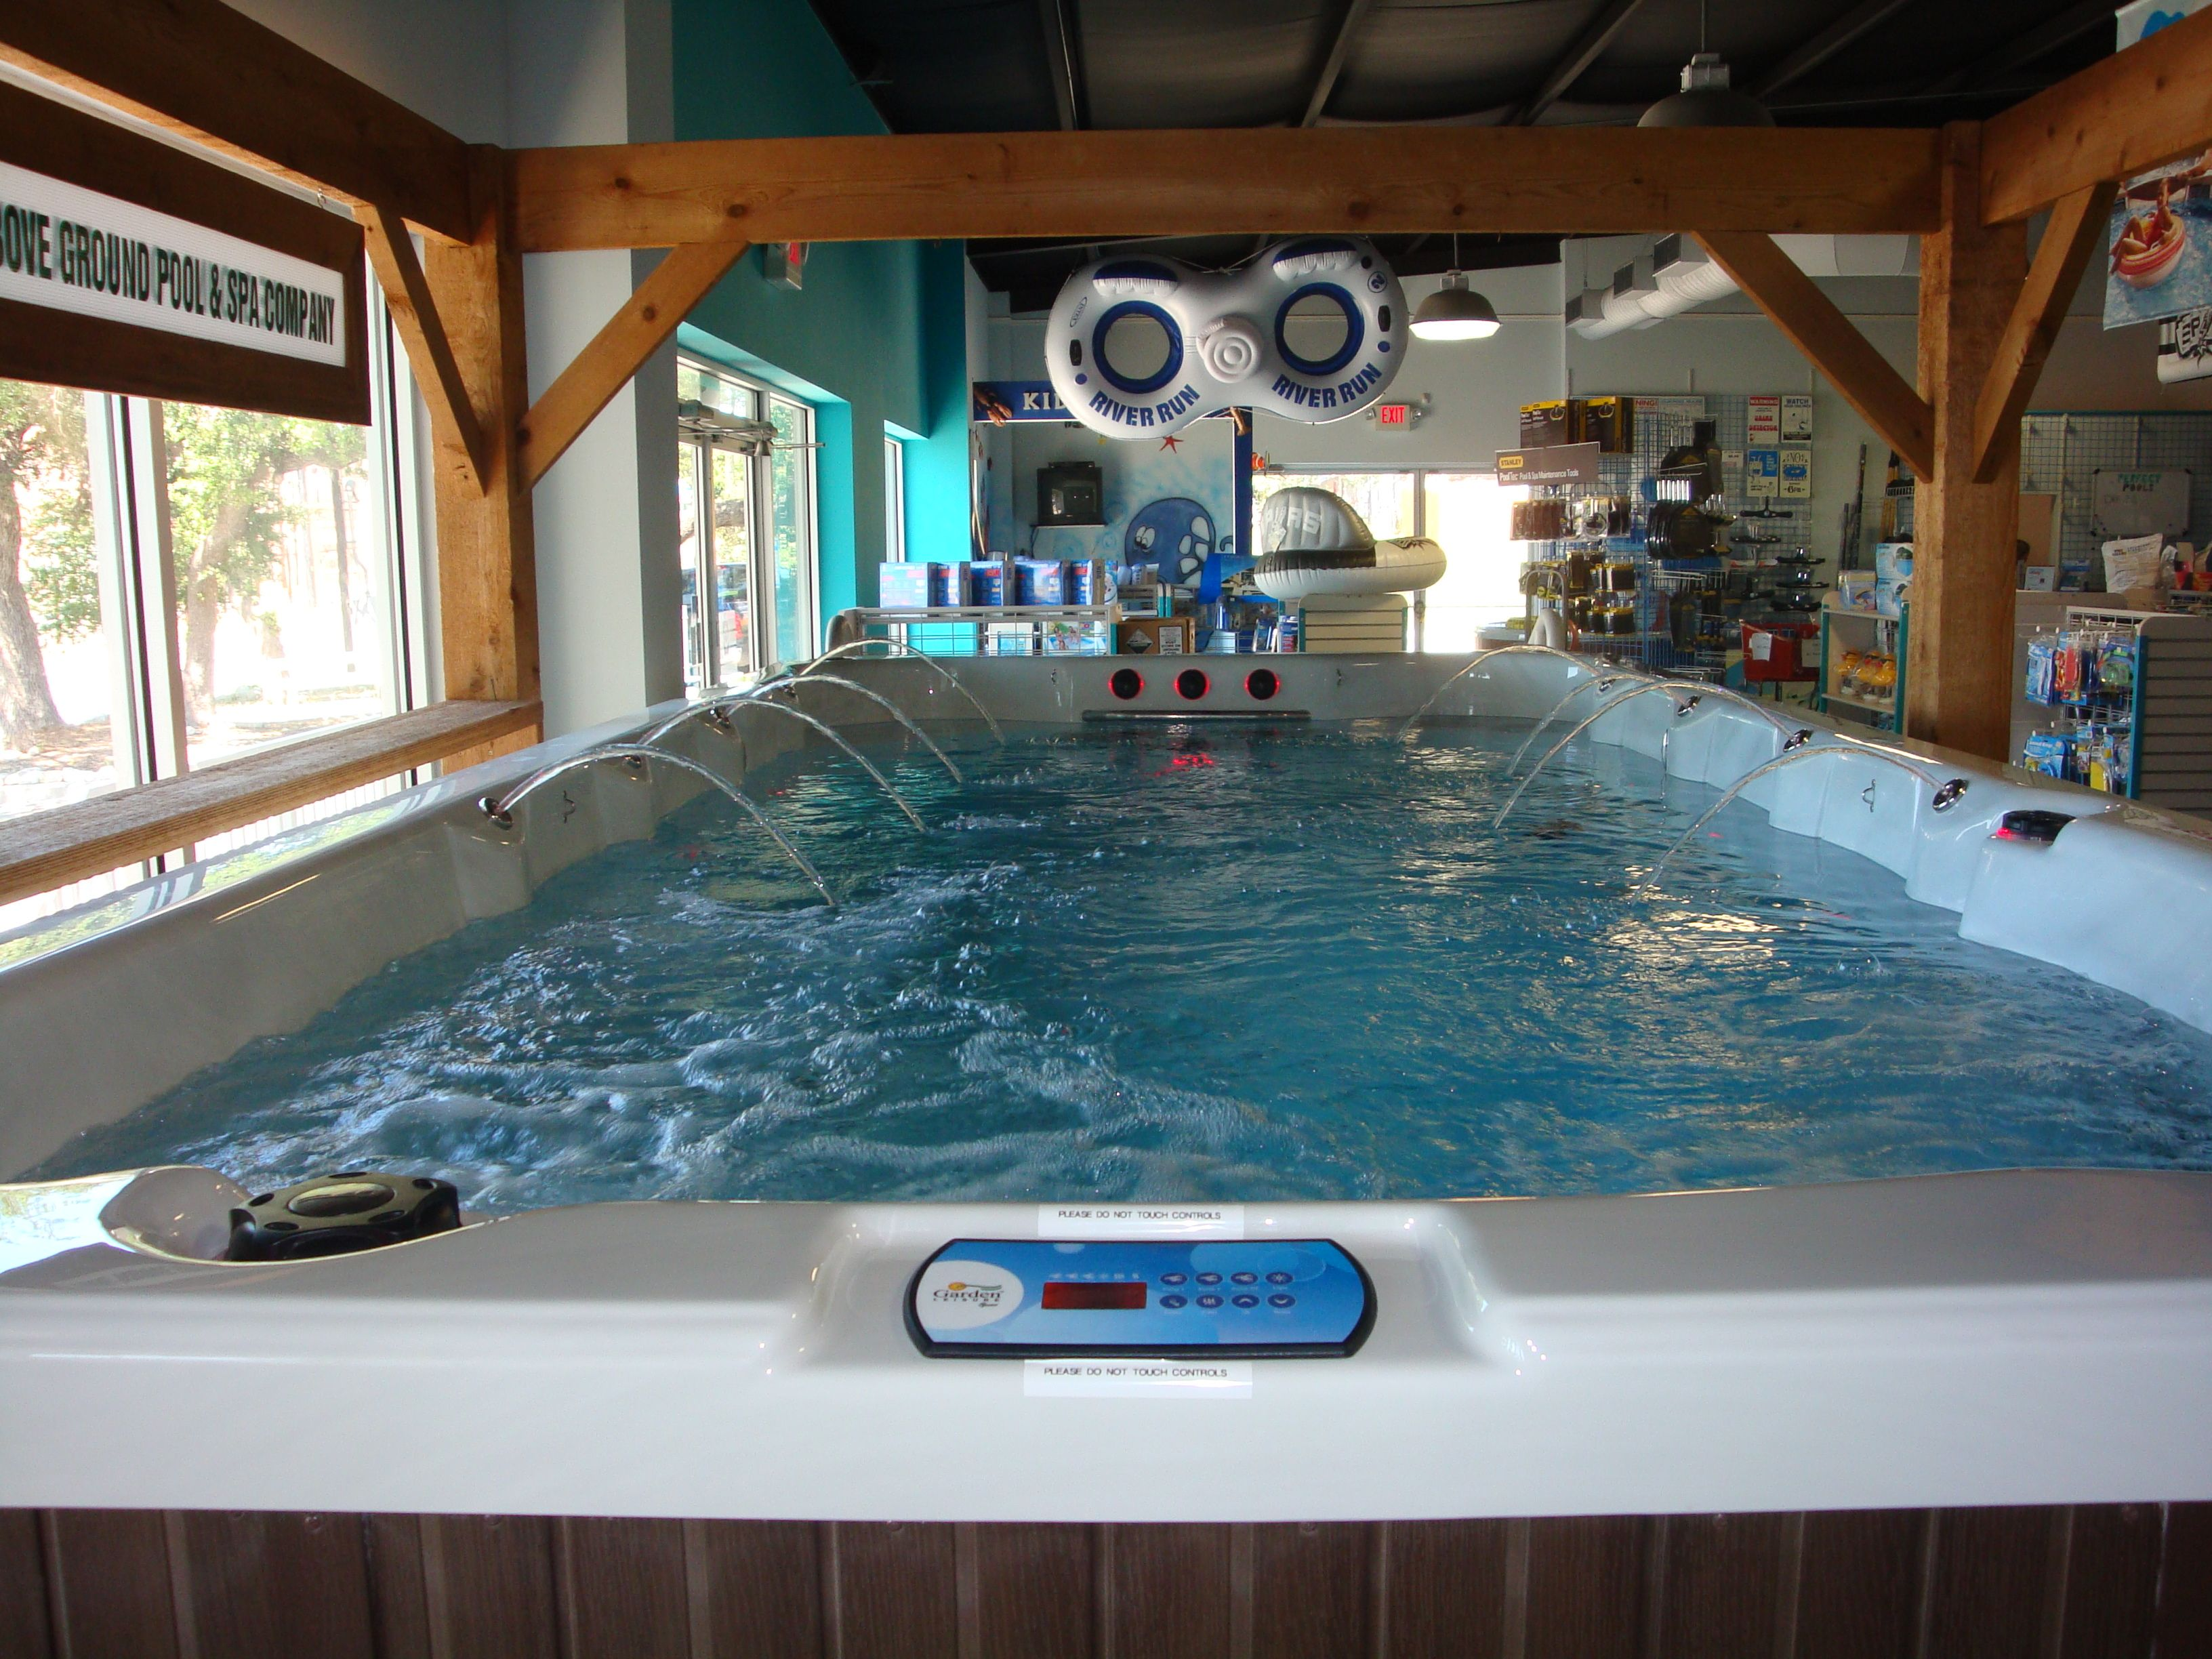 indoor garage pool house agp swim spas beat swimming pools because - Swimming Pool And Spa Design